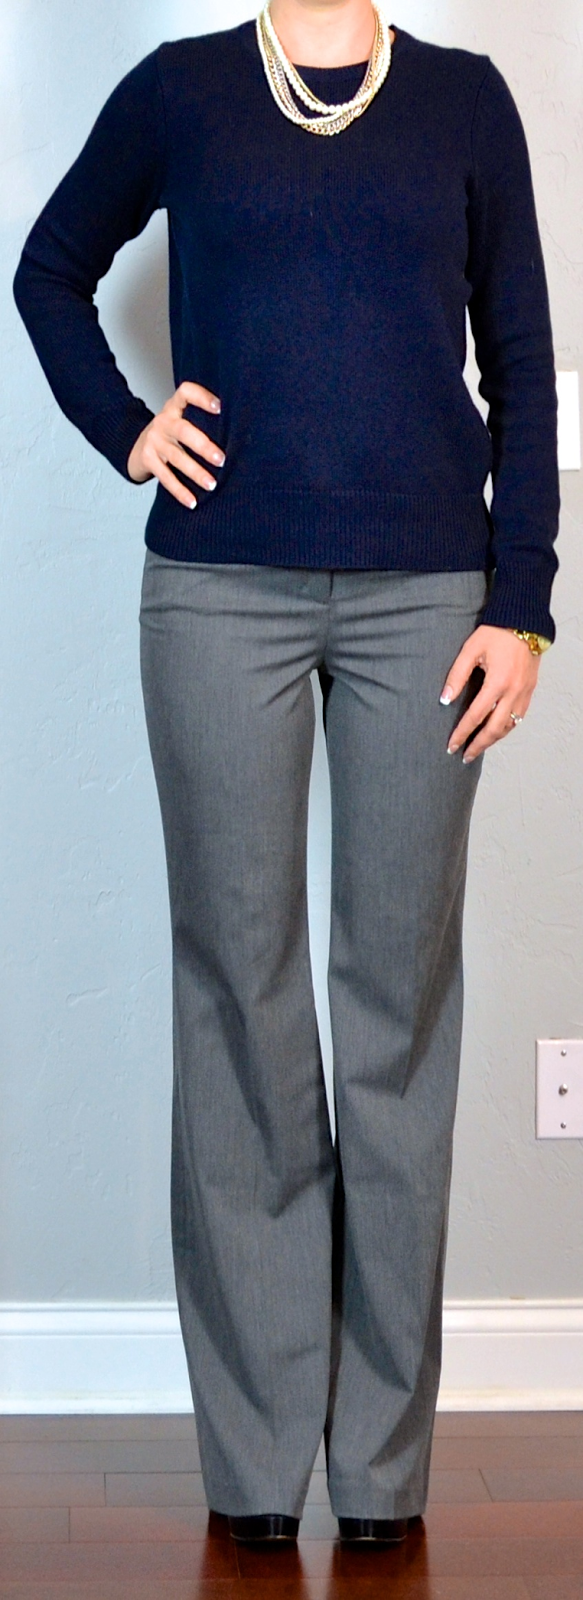 Outfit post navy side zipper sweater grey pants layered necklace | Outfit Posts